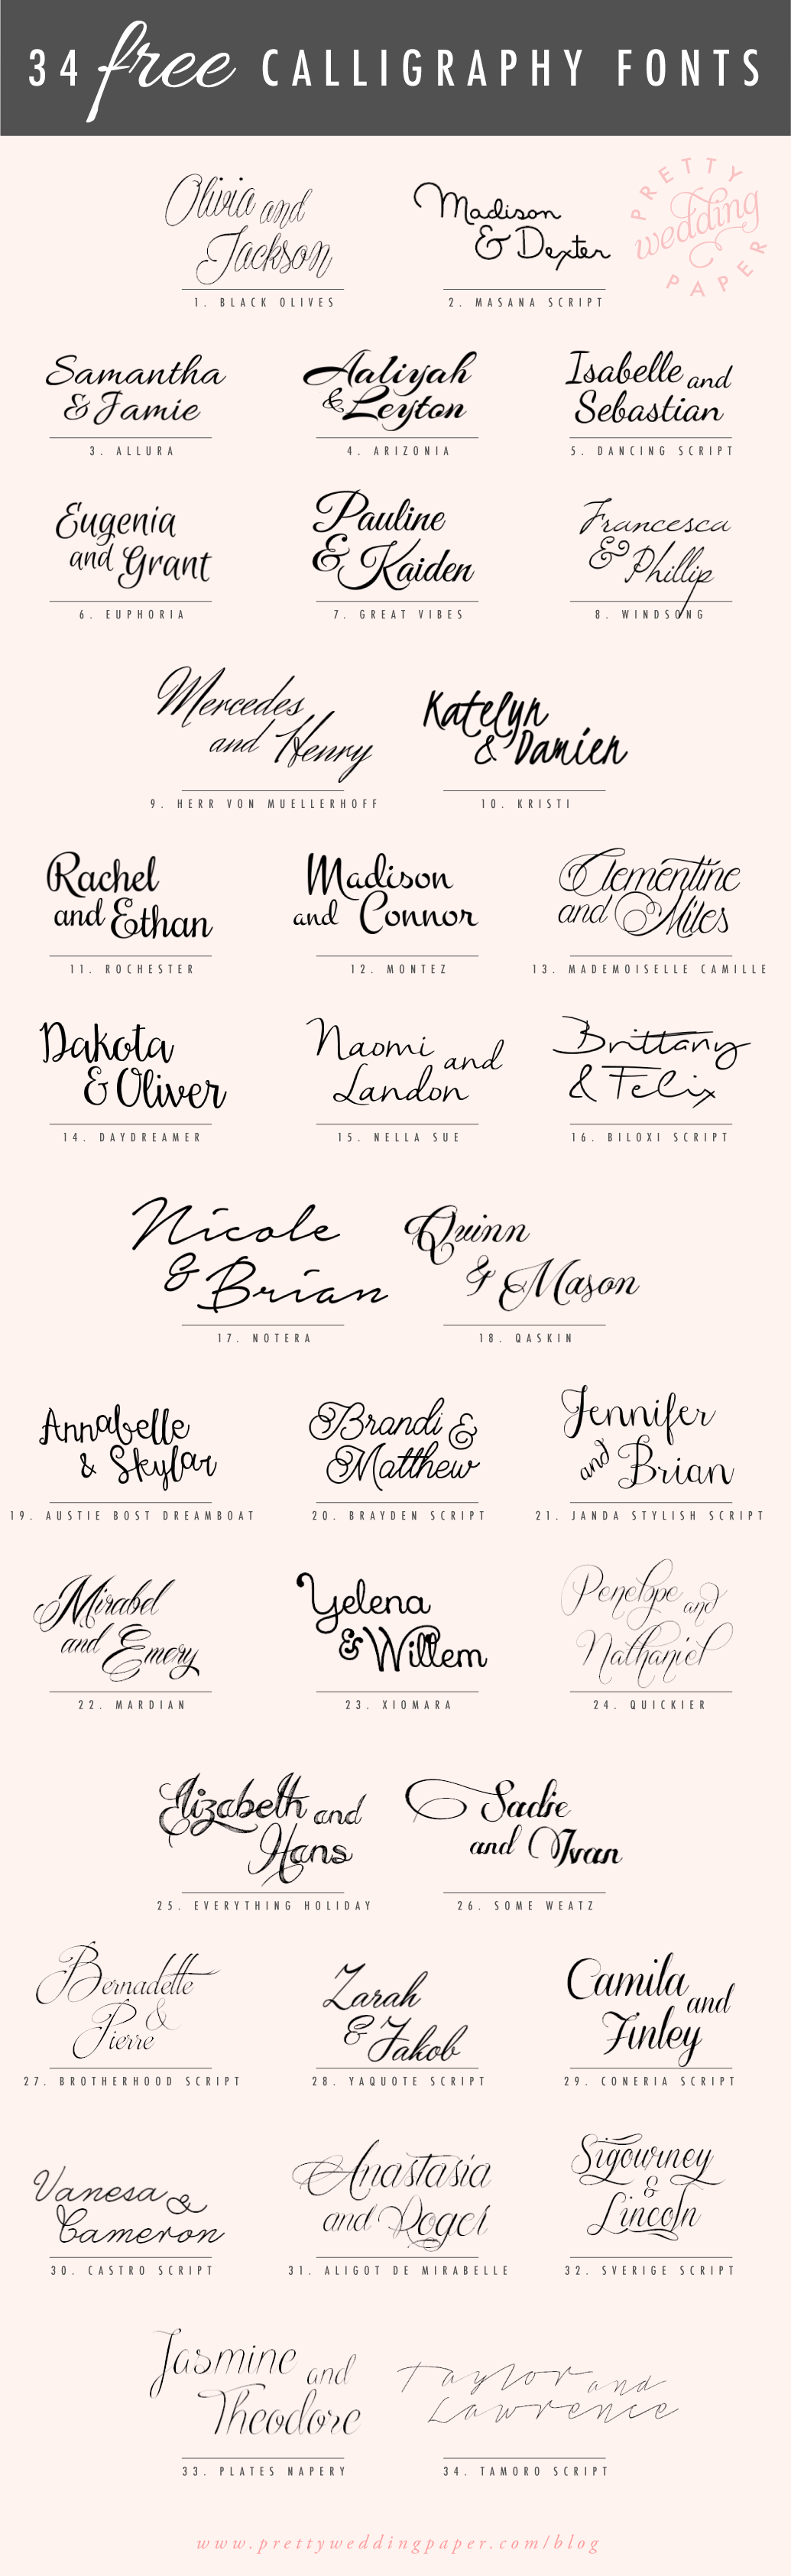 34 free calligraphy script fonts for wedding invitations Calligraphy scripts